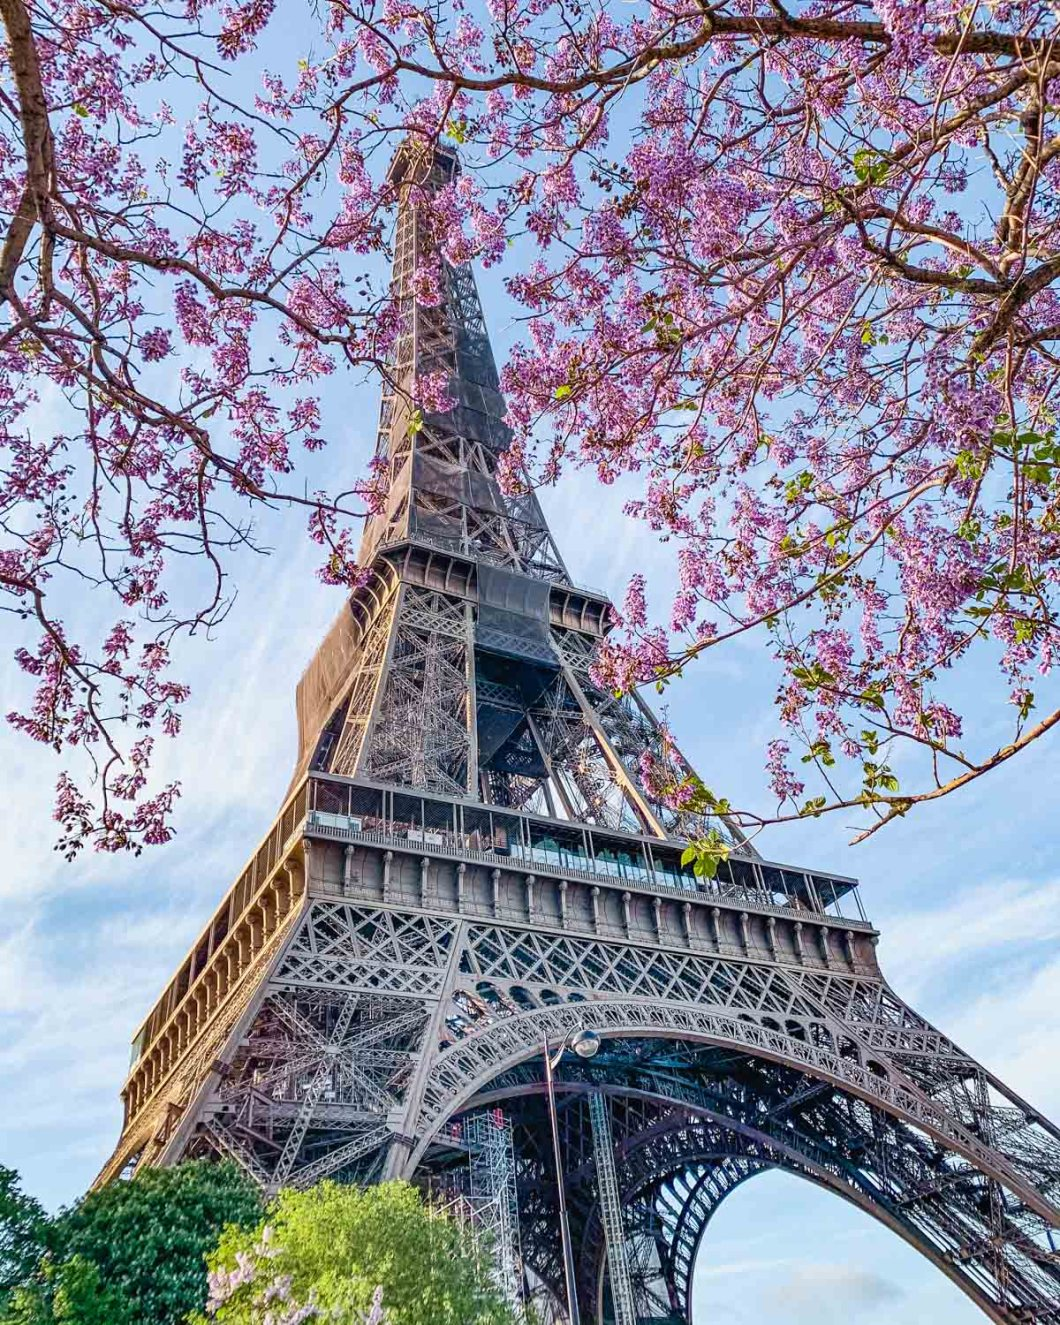 Paulownia trees (Empress trees) in bloom at the Eiffel Tower in the Trocadero gardens - Spring in Paris